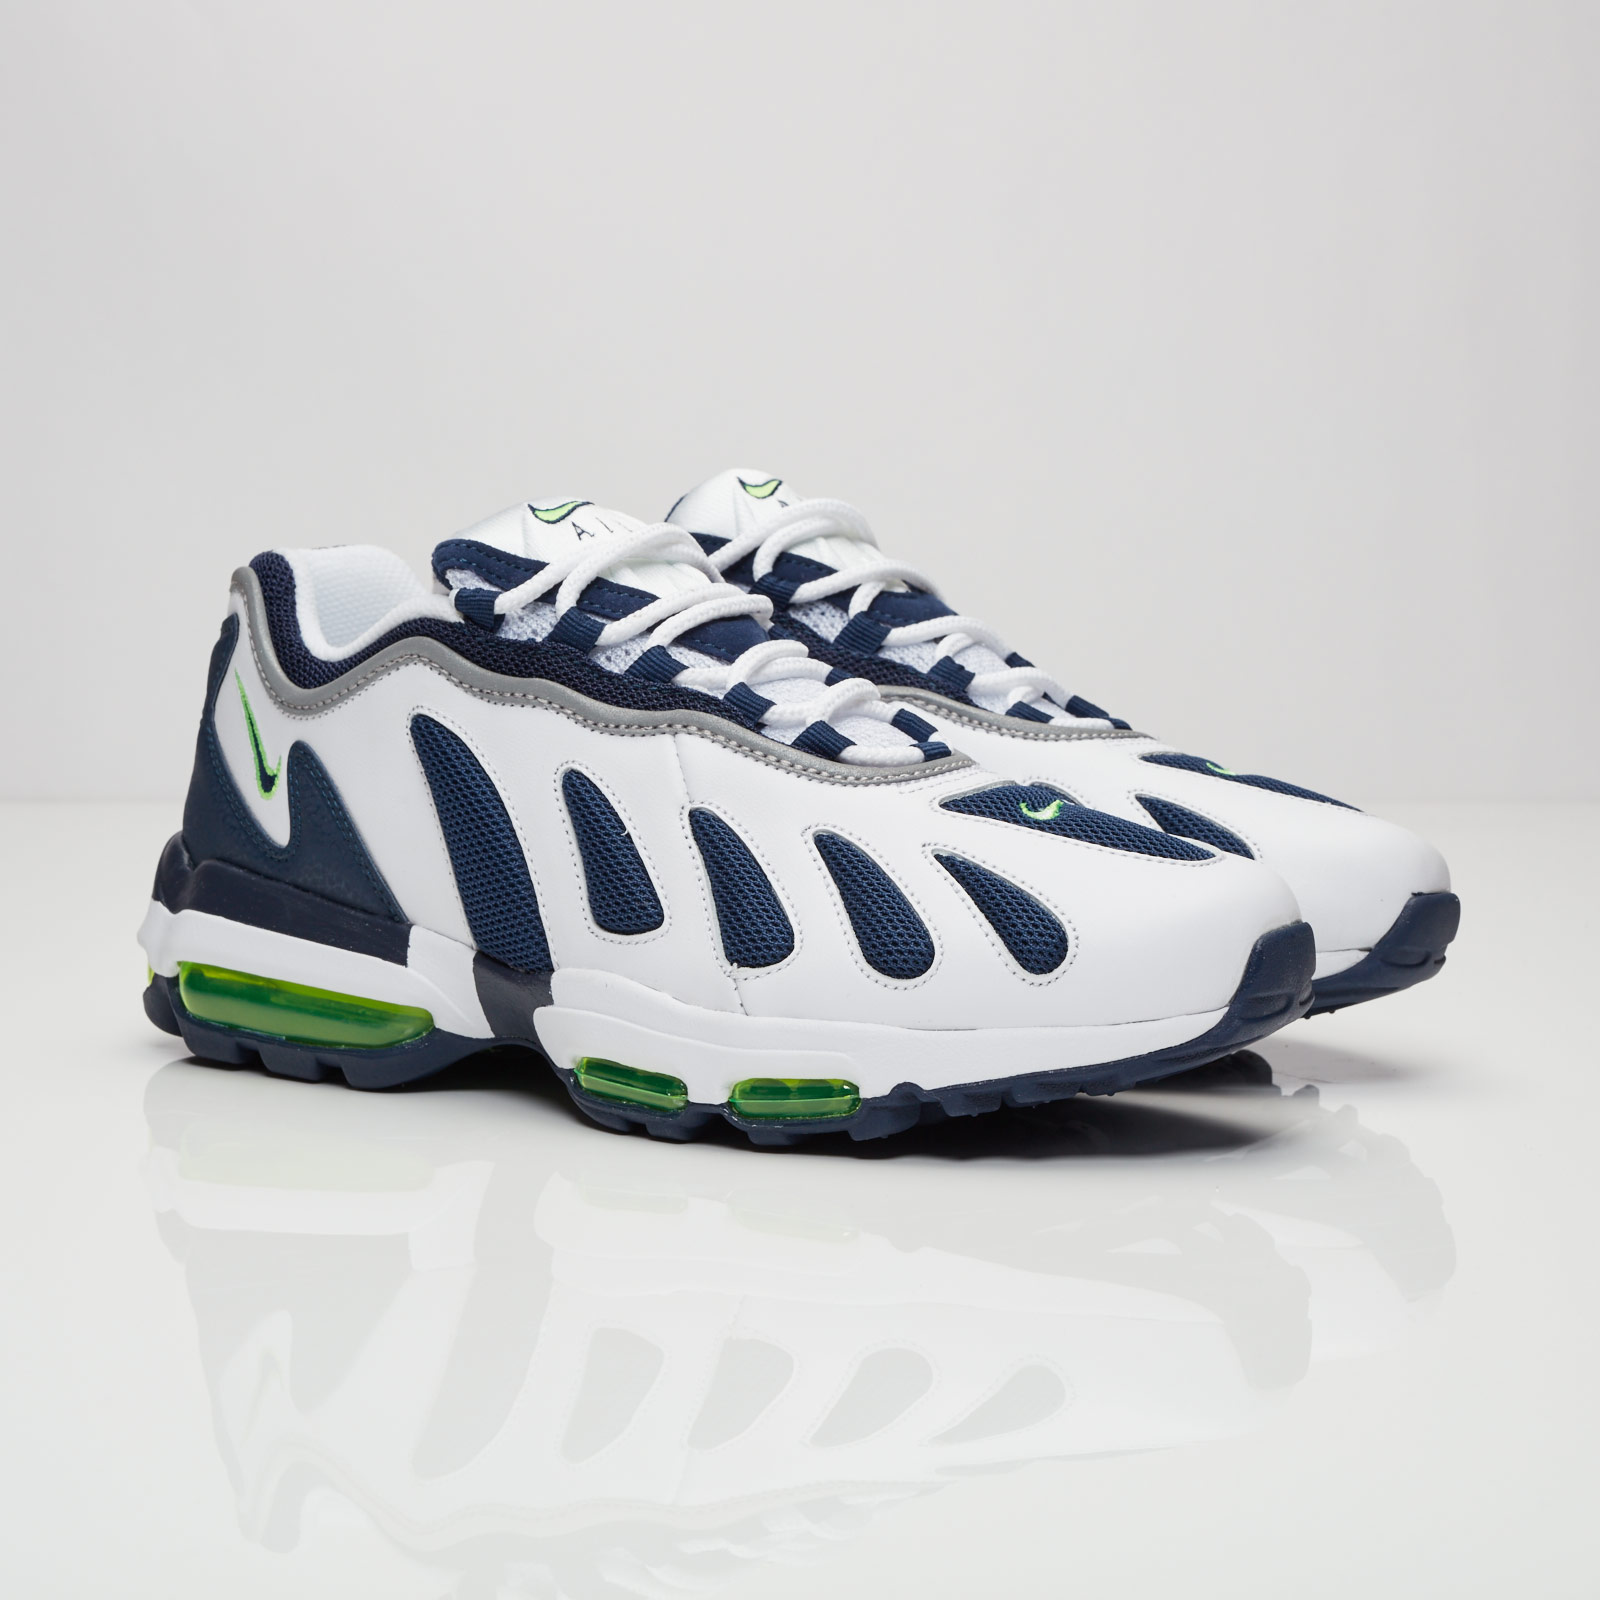 66ff2c1f3e Nike Air Max 96 XX - 870165-100 - Sneakersnstuff | sneakers ...